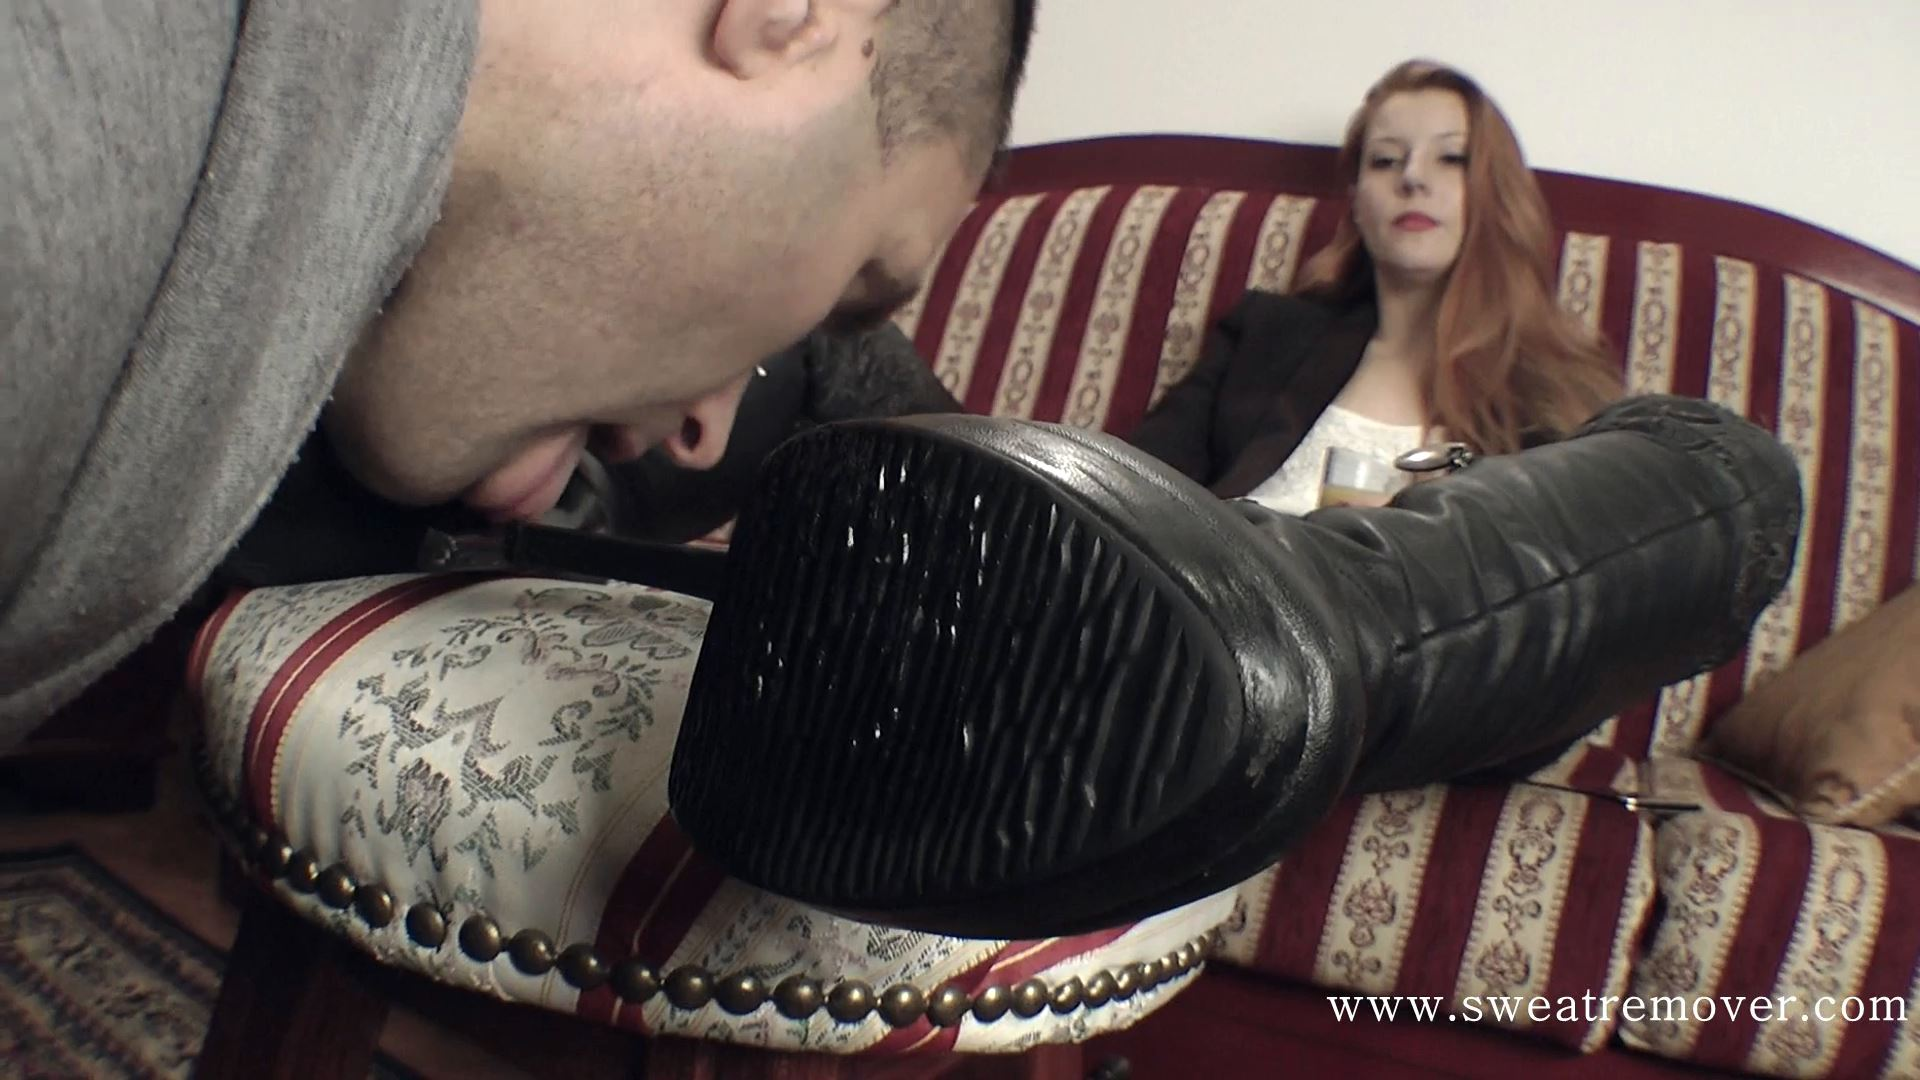 Goddess Victoria In Scene: An entire night spent in boots (Bitch, relax my soles) - SWEATREMOVER - FULL HD/1080p/MP4